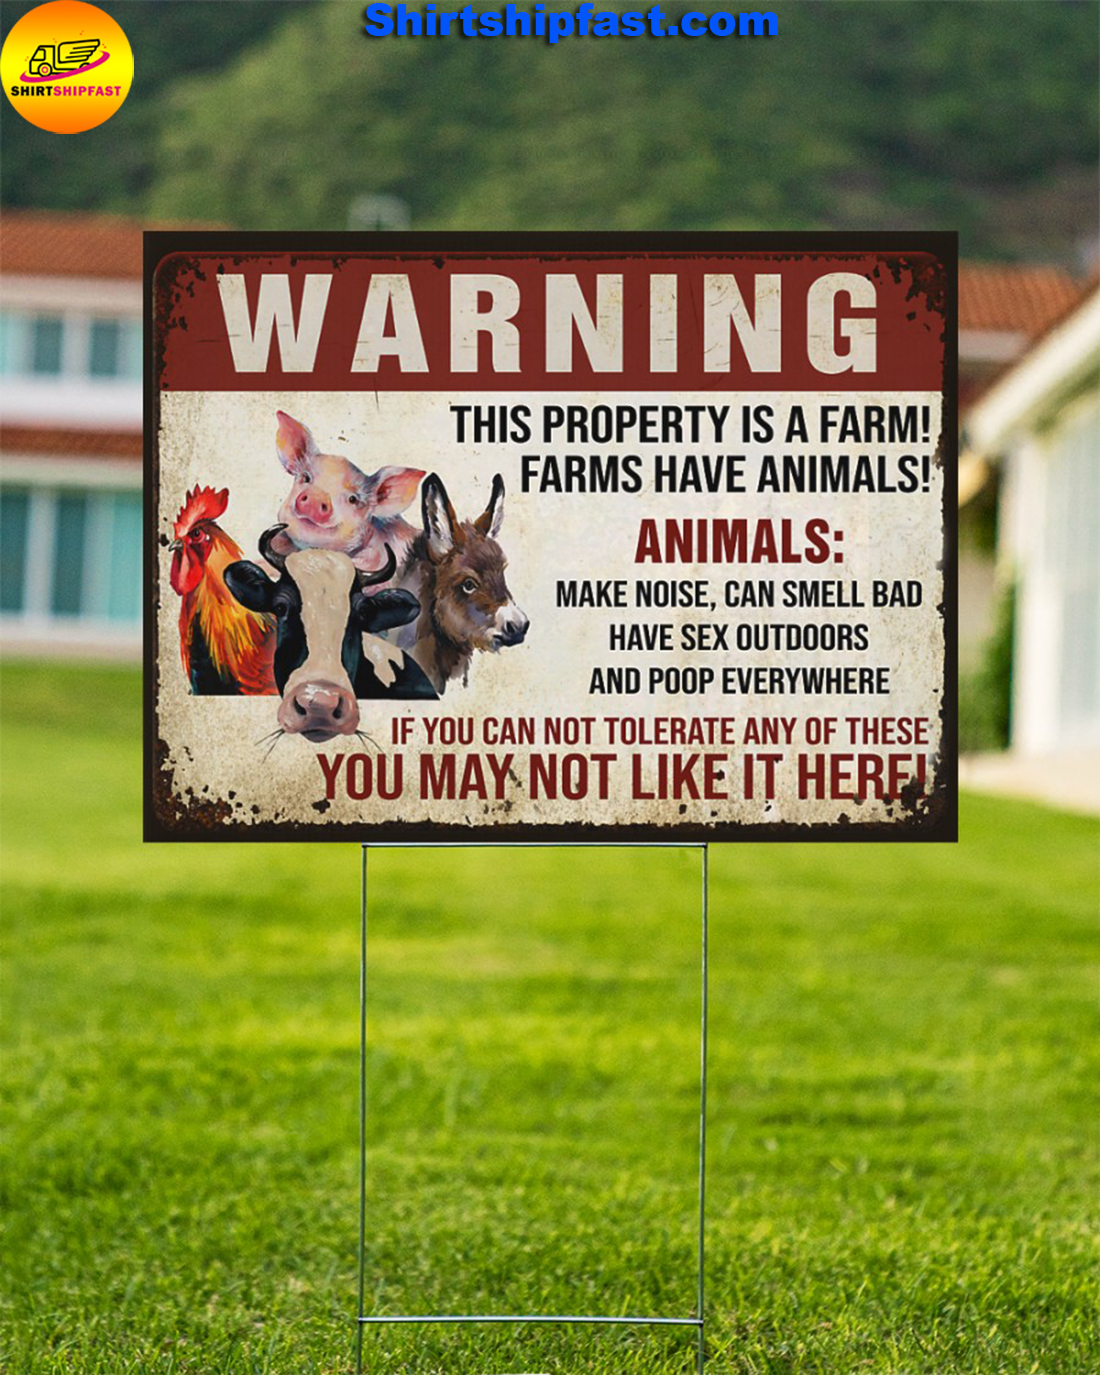 Animals Warninng this property is a farm yard signs